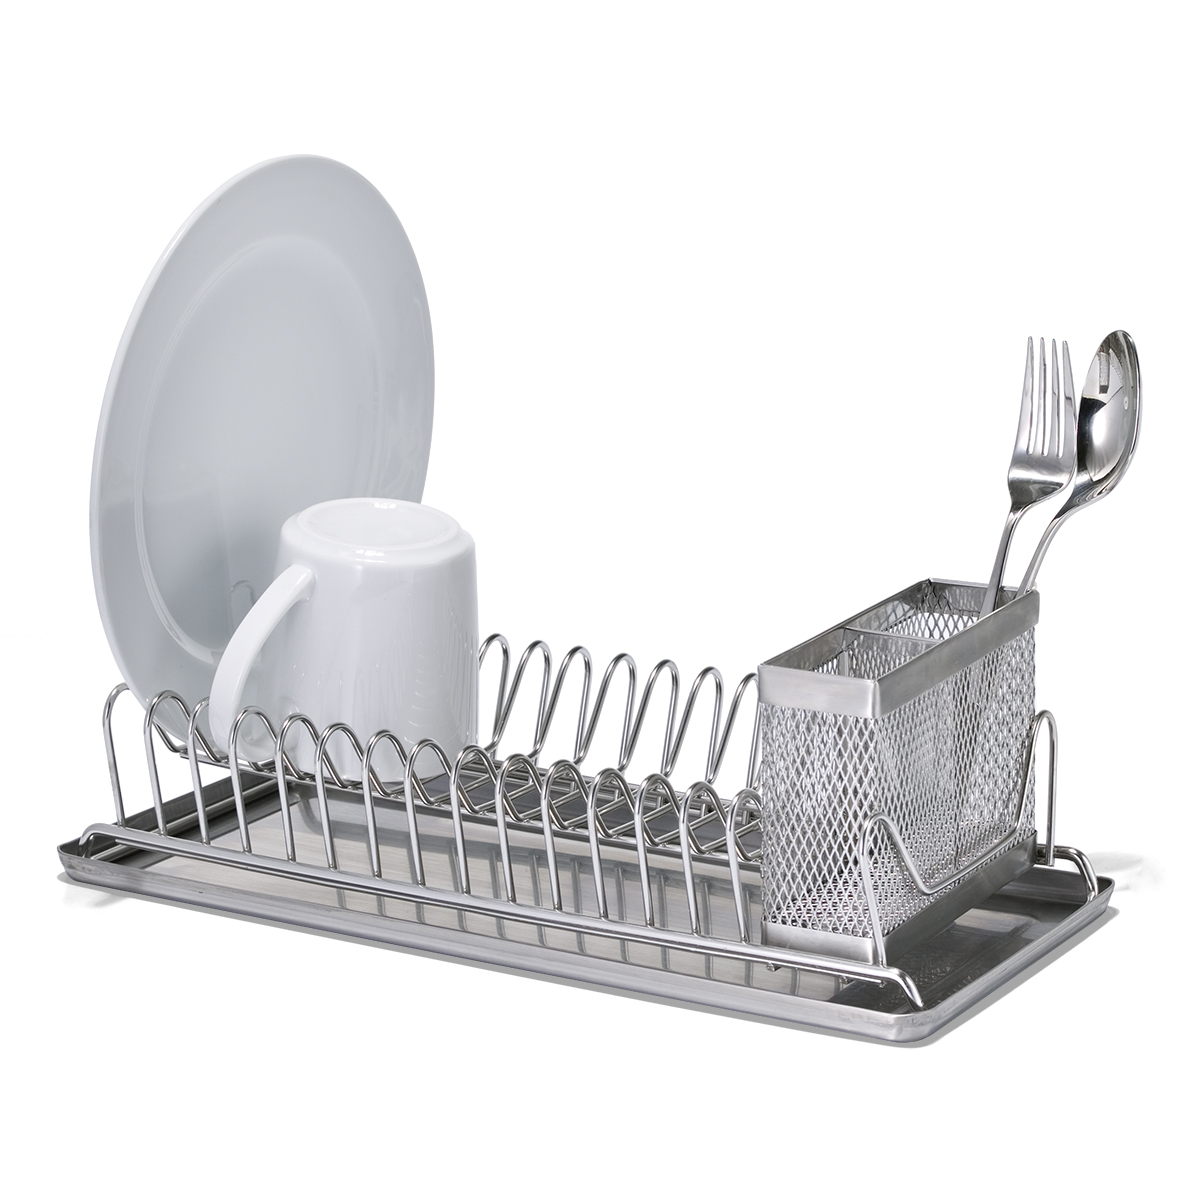 Polder Stainless Steel Compact Dish Rack  sc 1 st  The Container Store & Polder Stainless Steel Compact Dish Rack | The Container Store